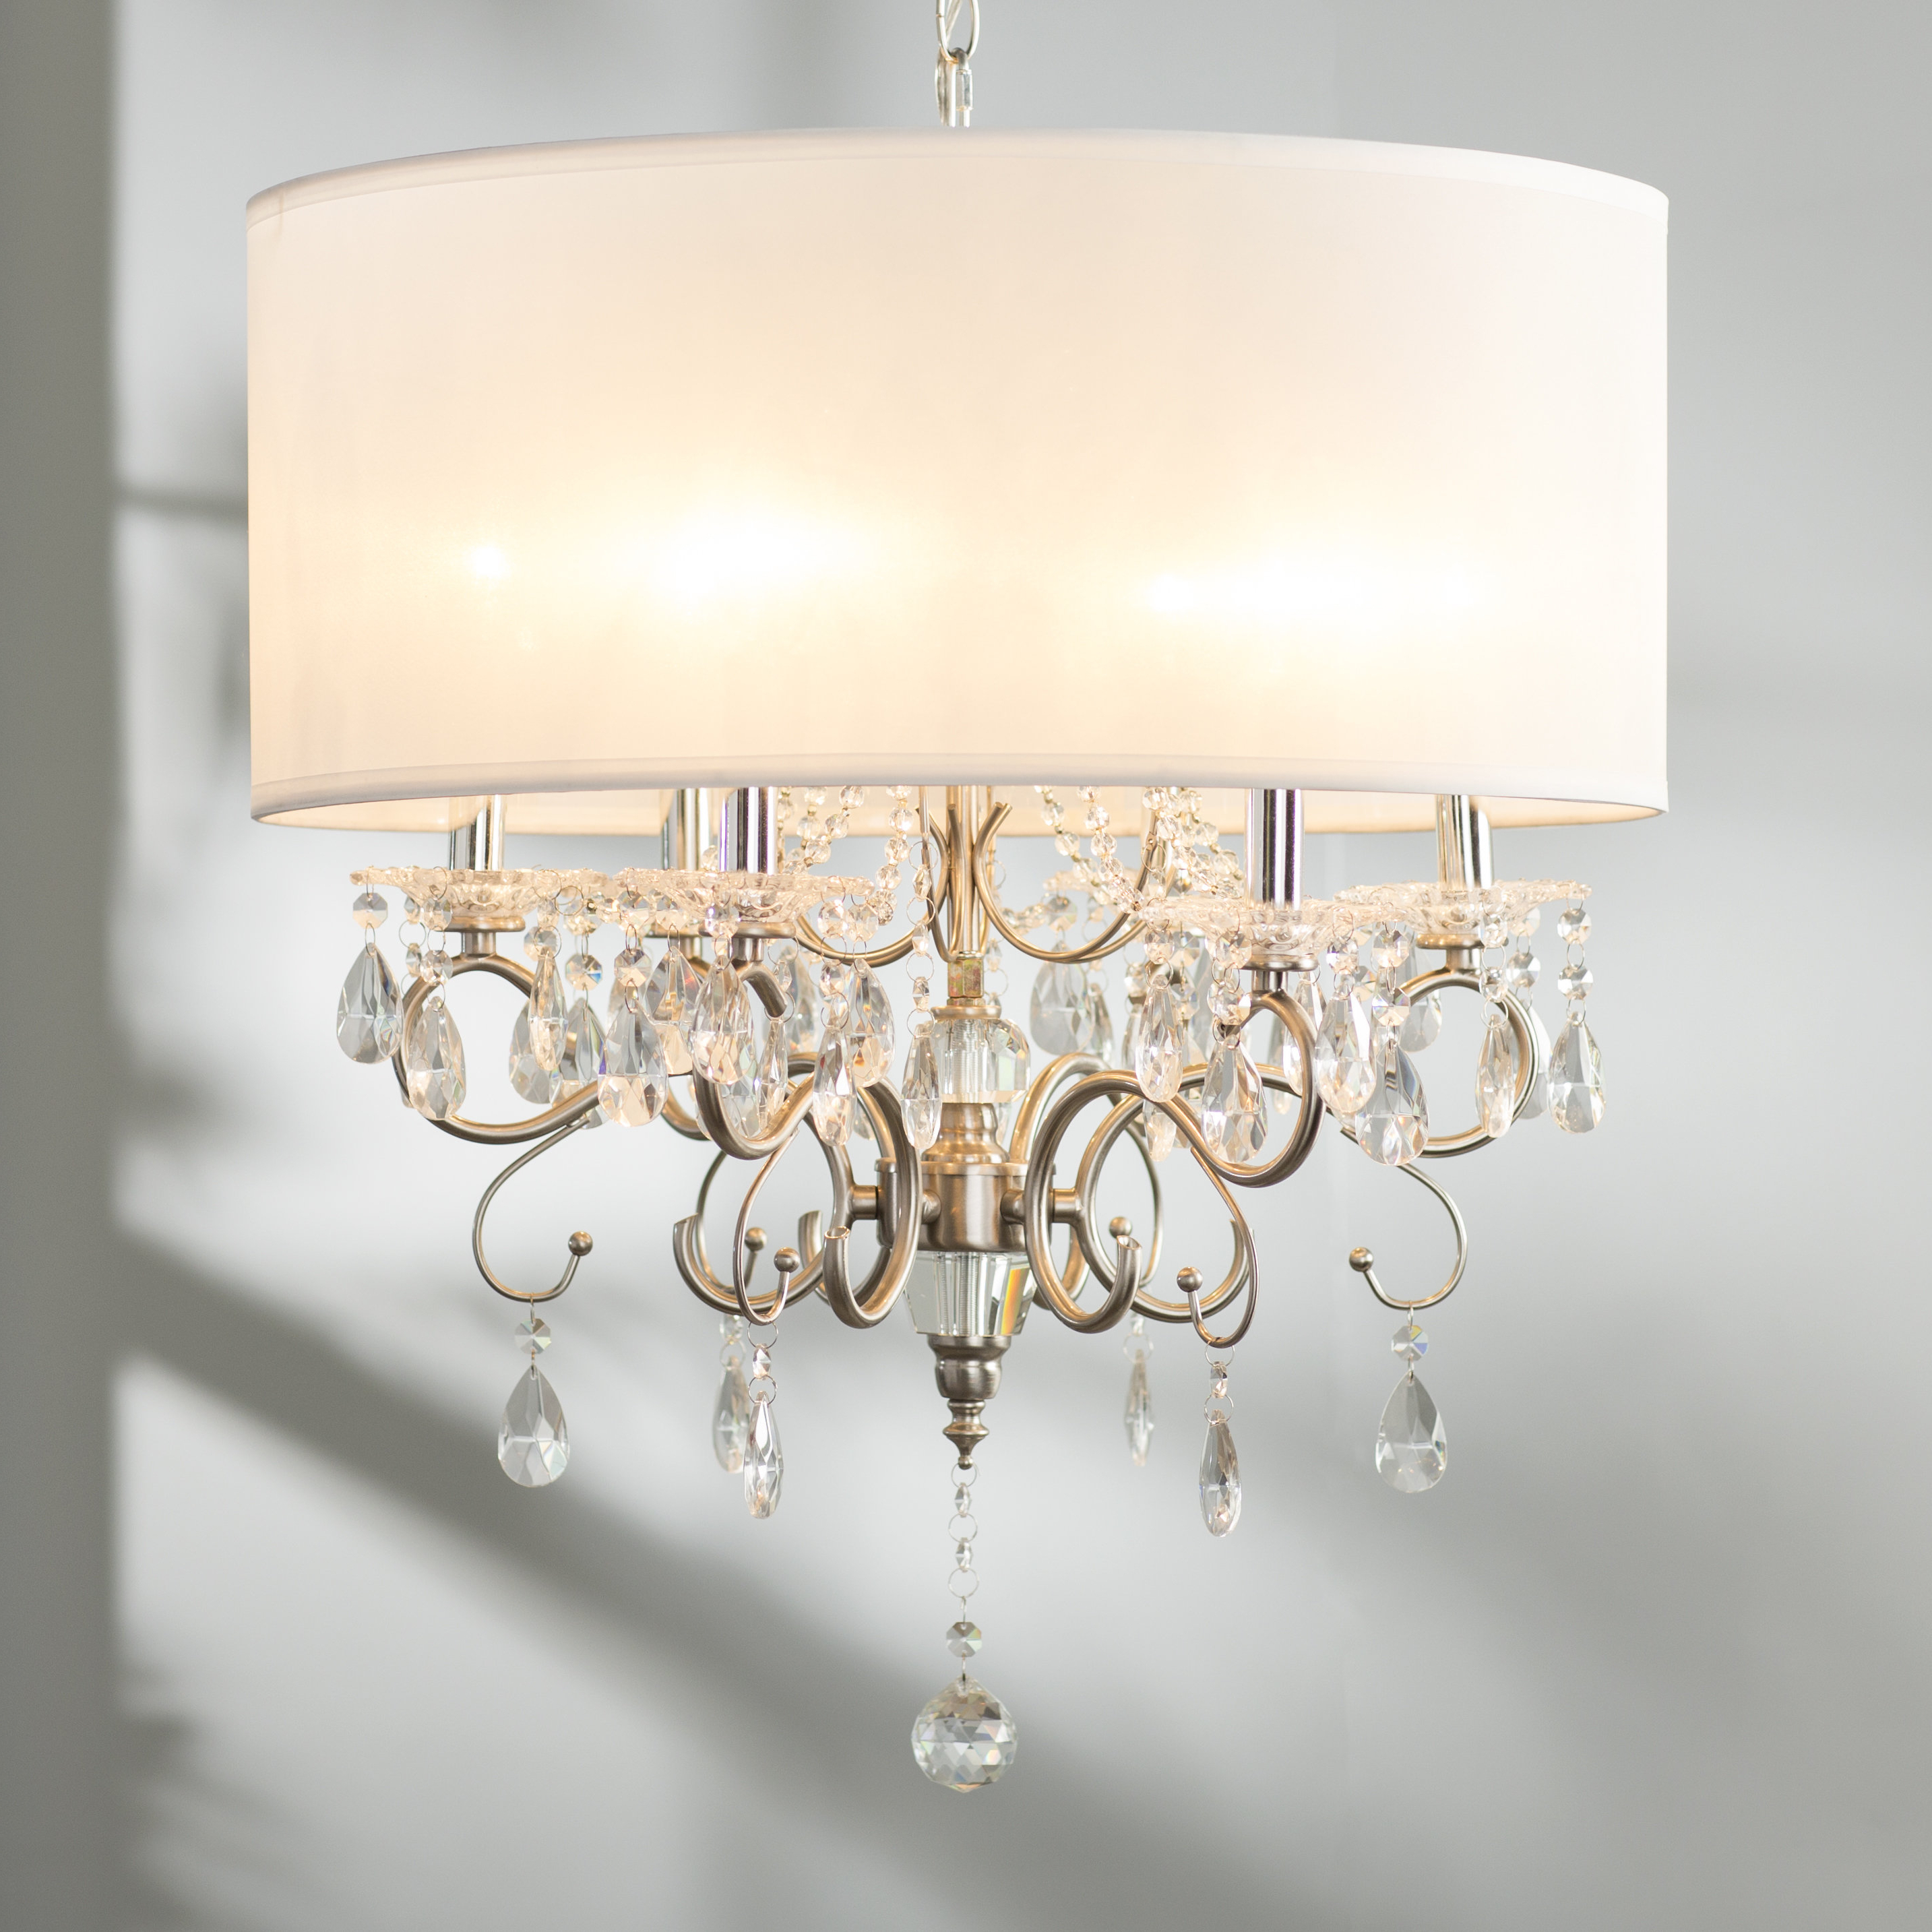 Wayfair Intended For Current Sherri 6 Light Chandeliers (View 15 of 25)